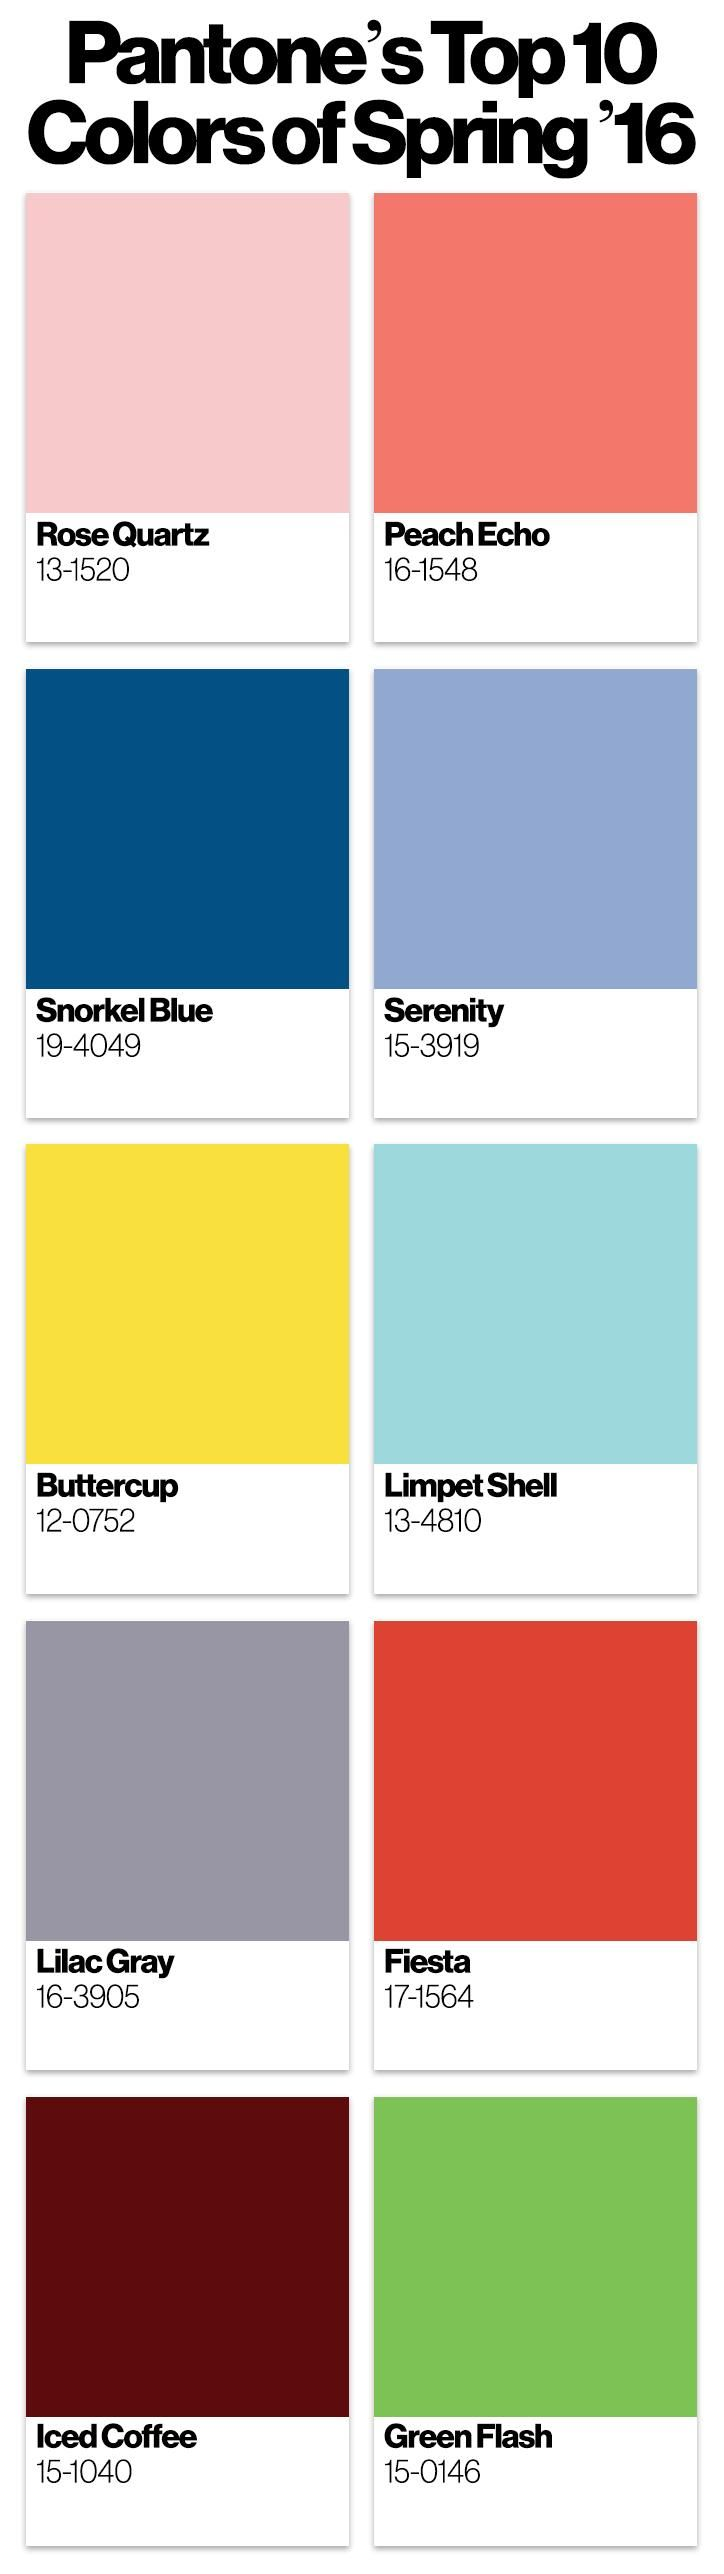 pantone colors - photo #37